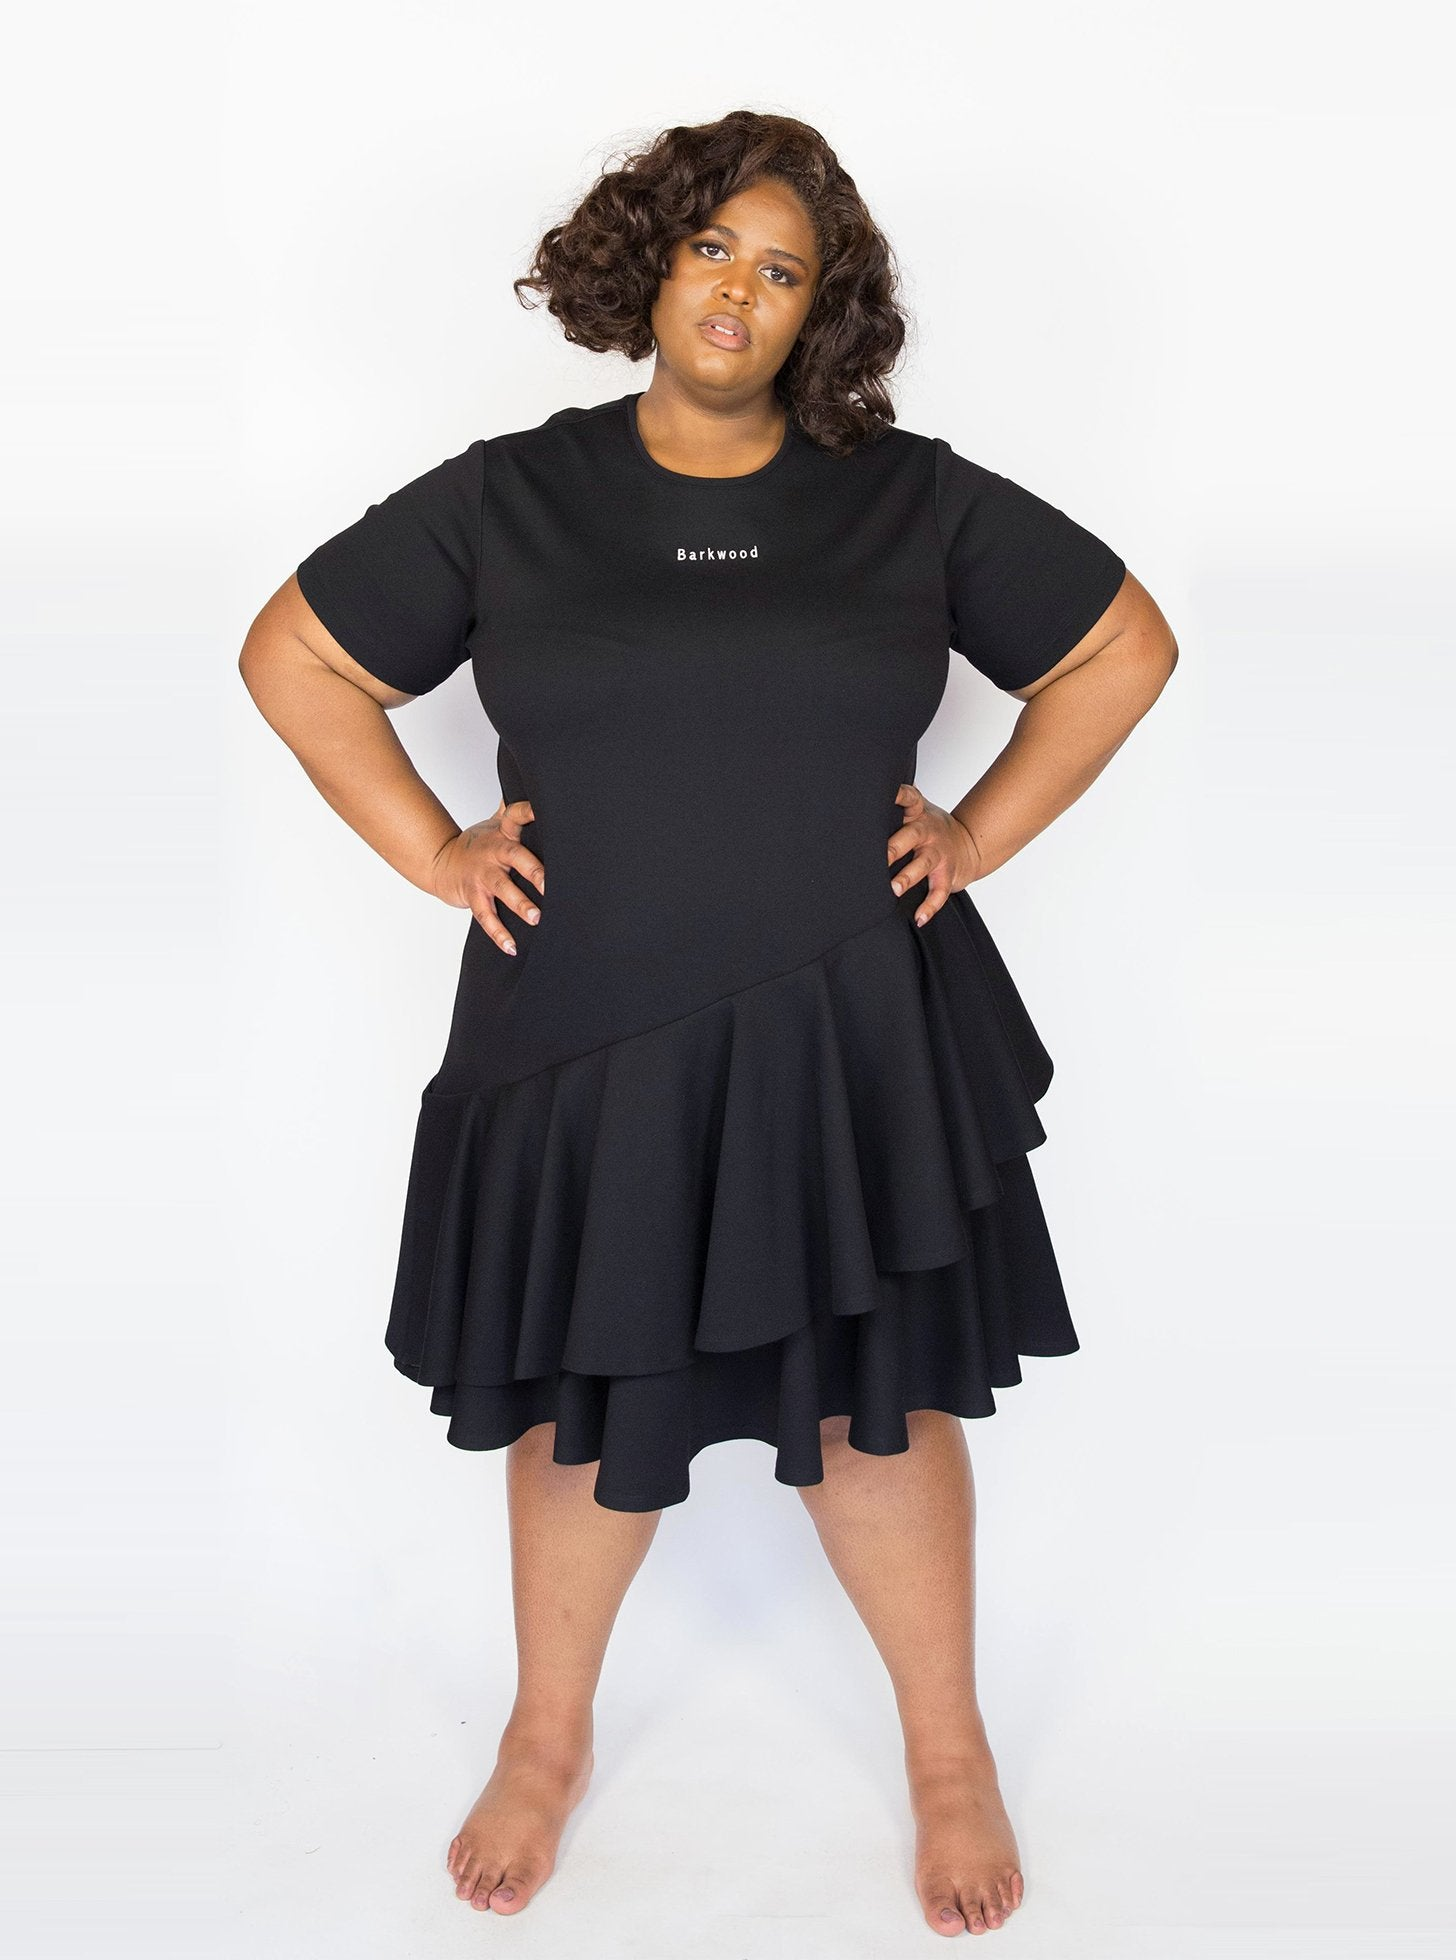 Black Topsy Turvy Dress